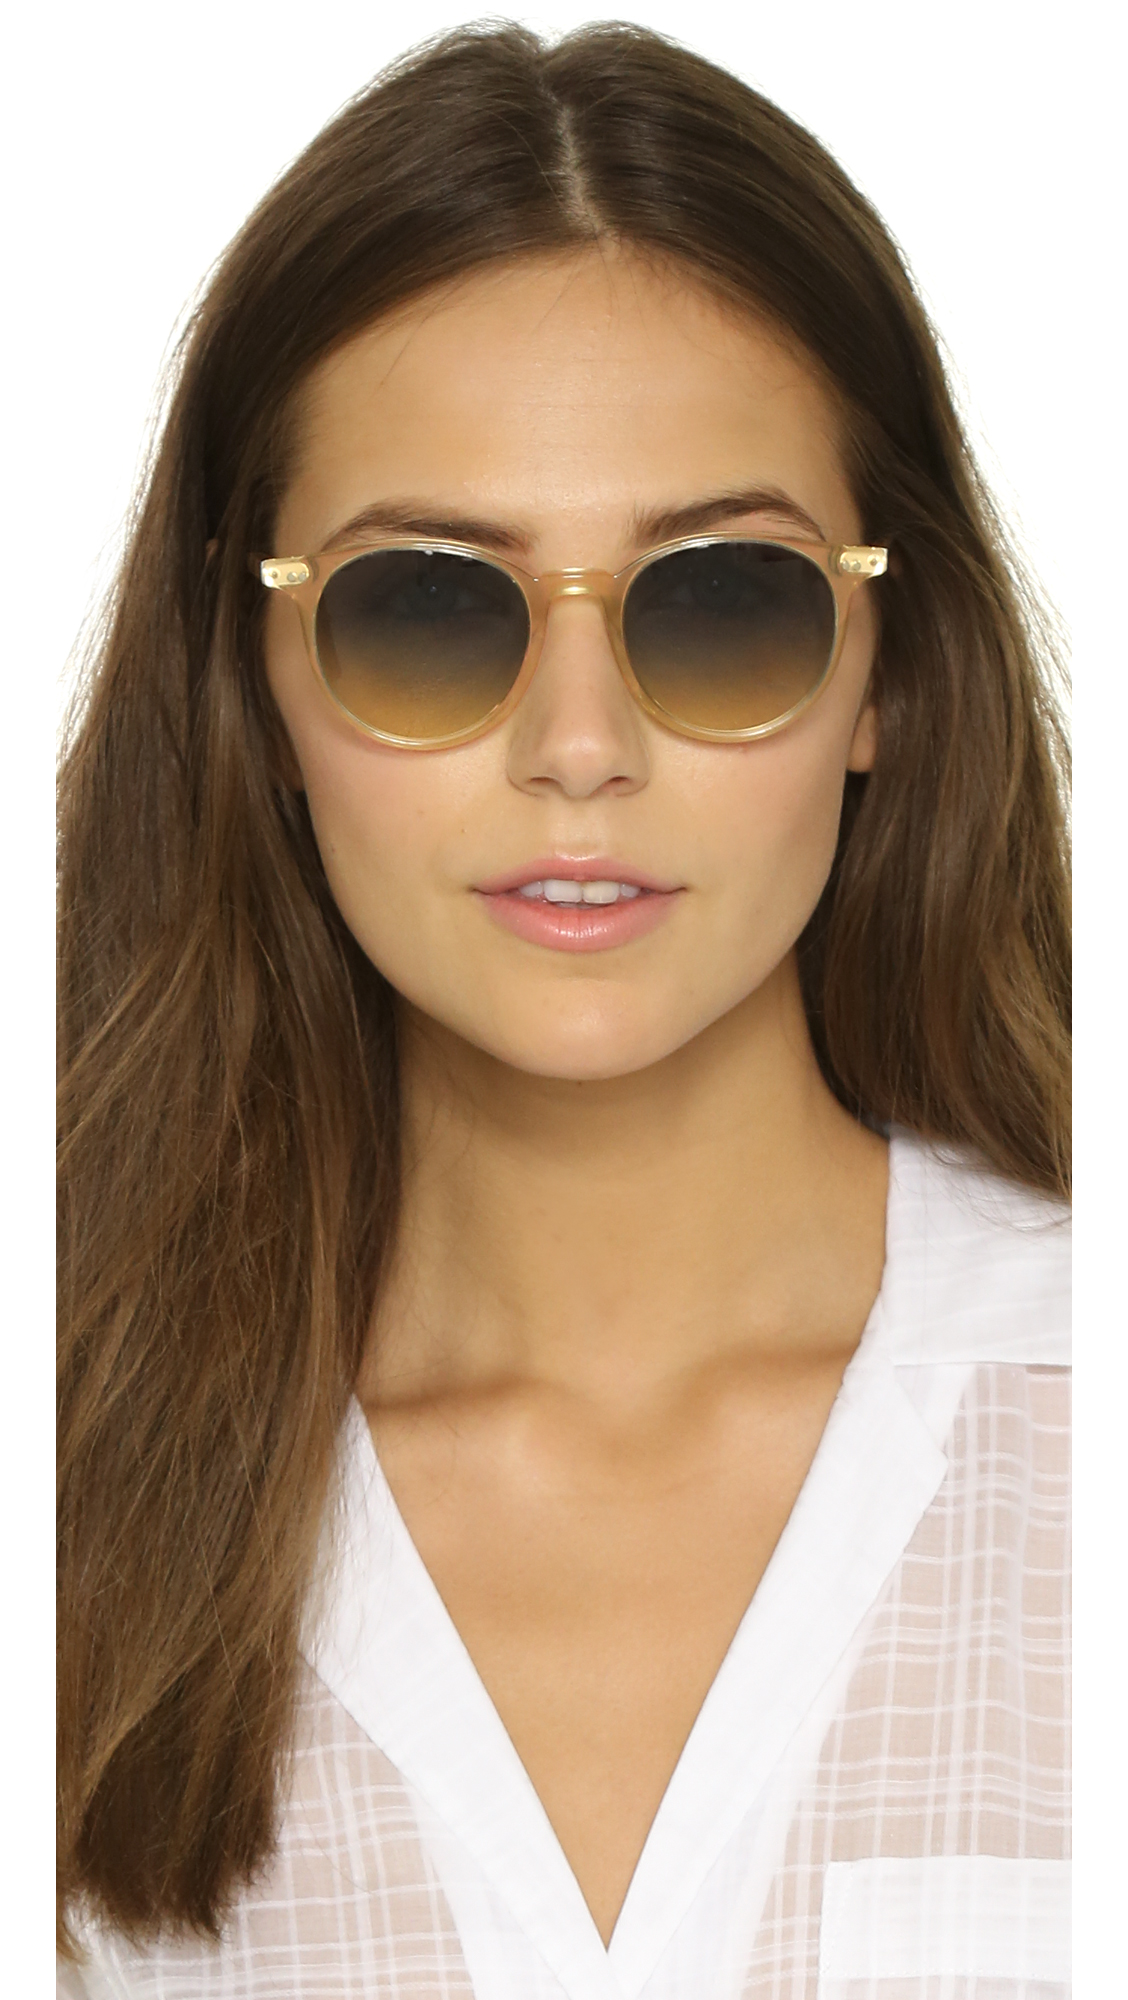 87664335b354a Oliver Peoples Eyewear Delray Sunglasses